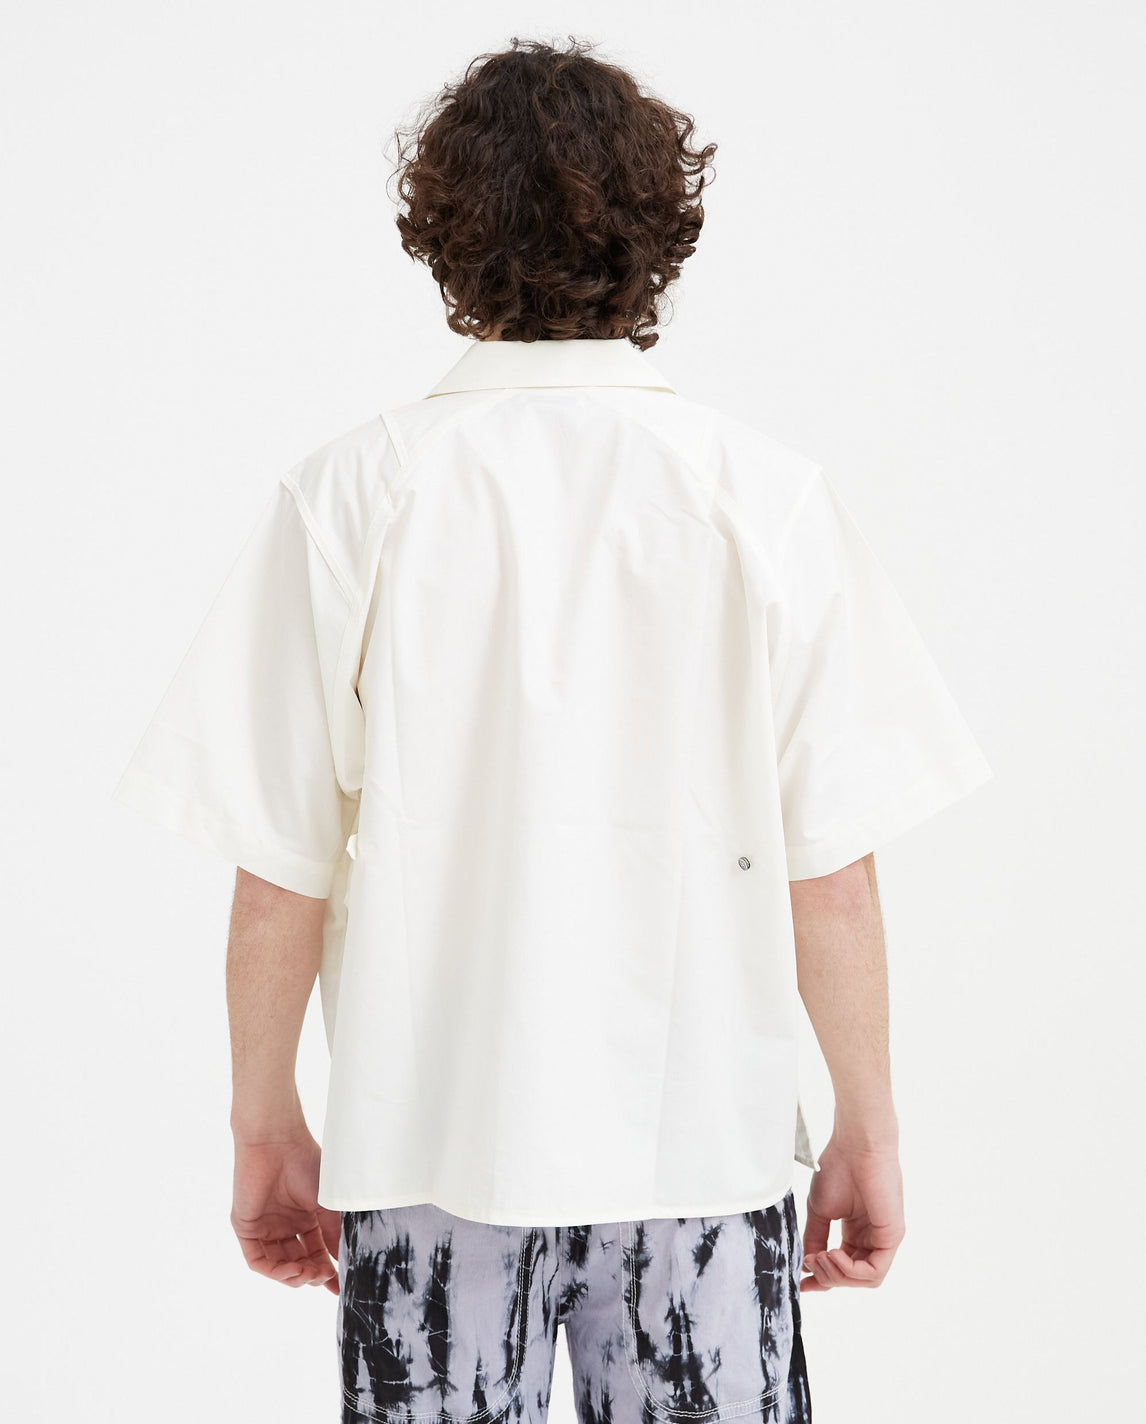 Slant Pockets Hawaiian Shirt - White UNISEX Pronounce